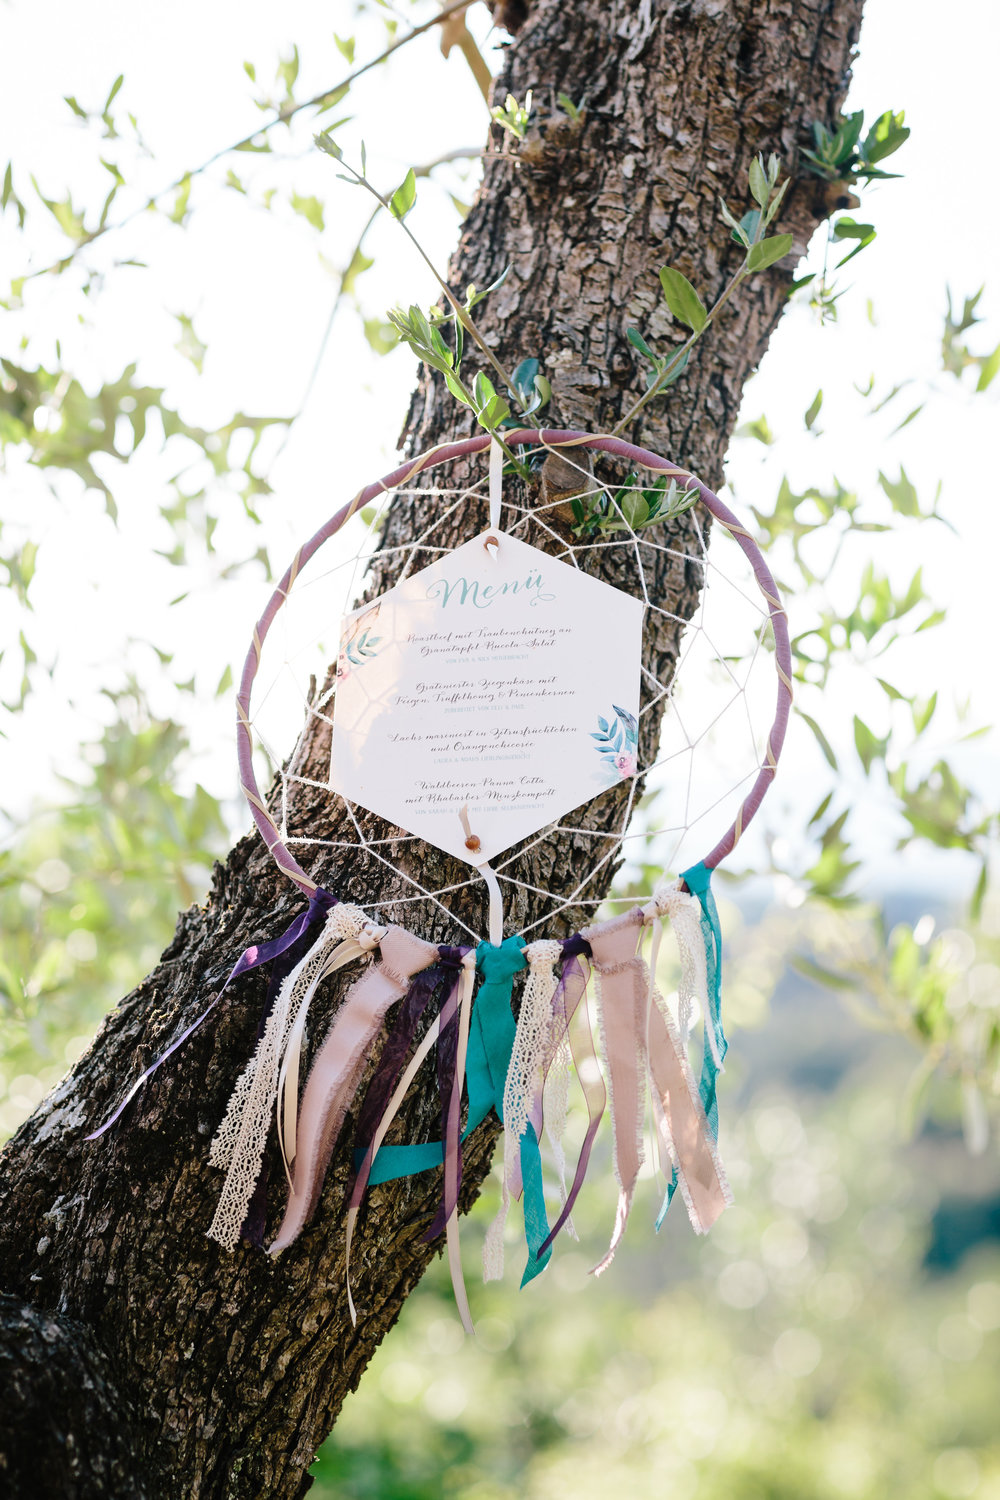 Styled Shoot Boho by Marie & Michael Photography 022.jpg